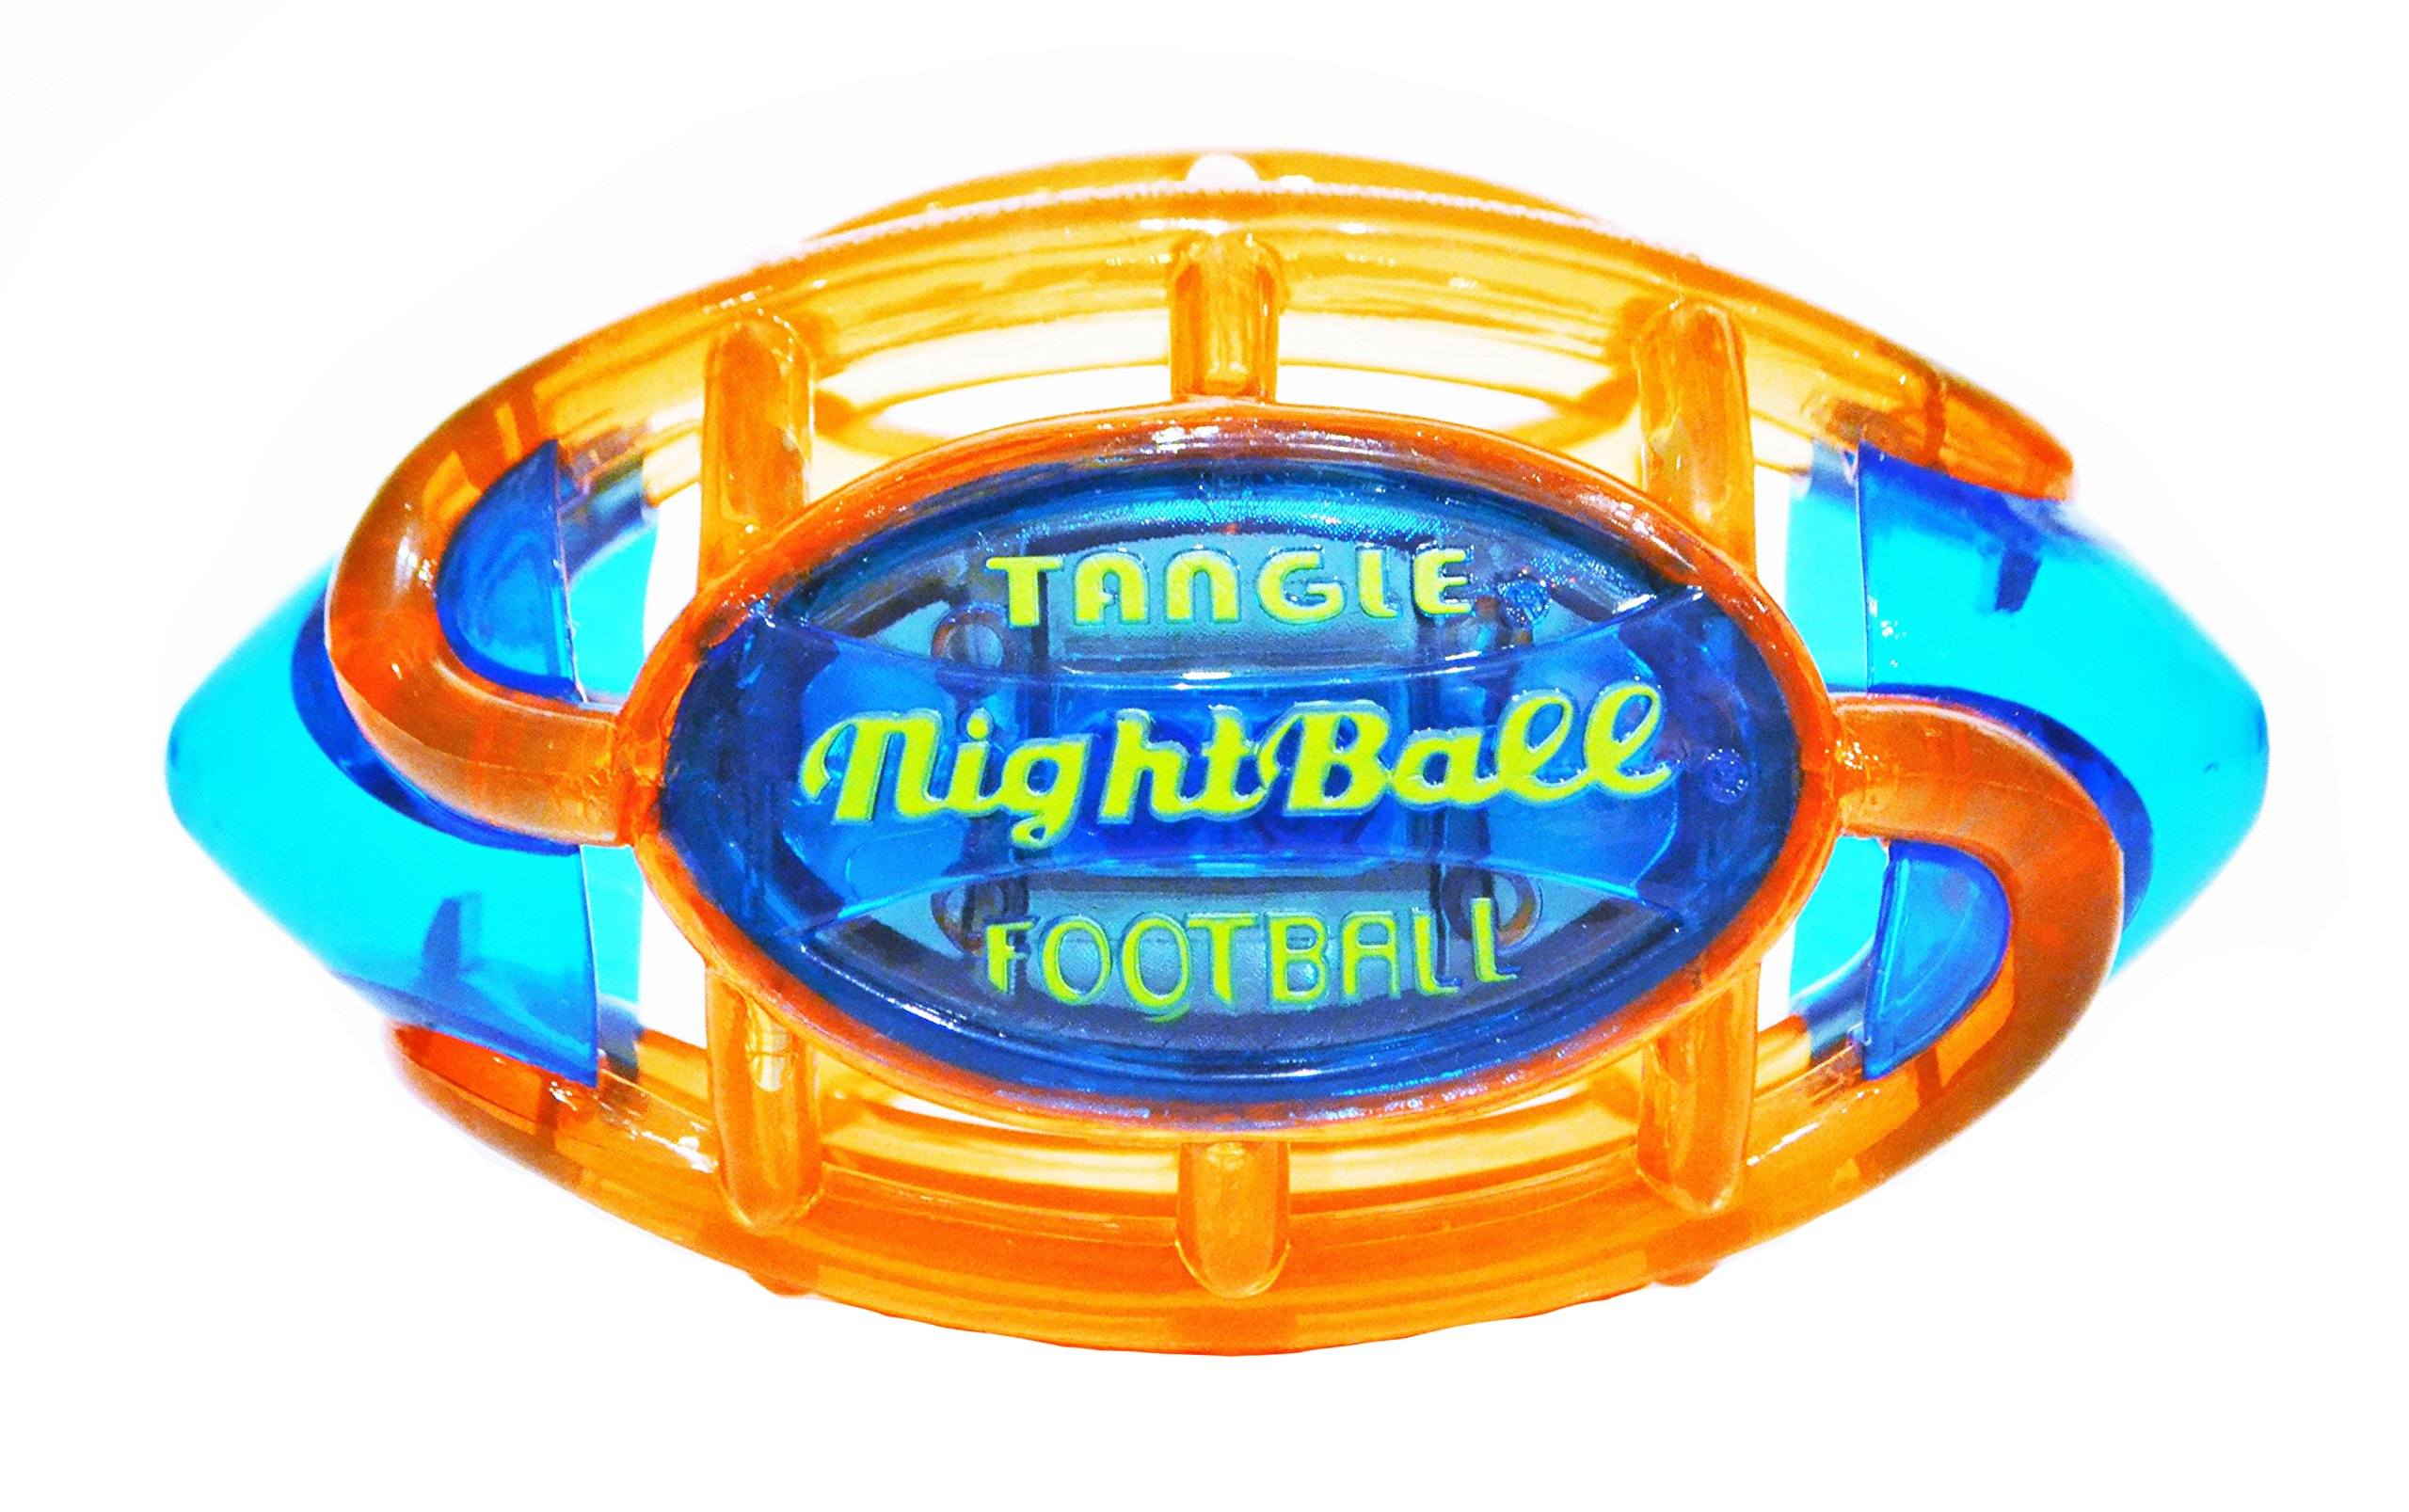 Tangle NightBall Glow in The Dark Light Up LED Football, Orange with Blue by Tangle